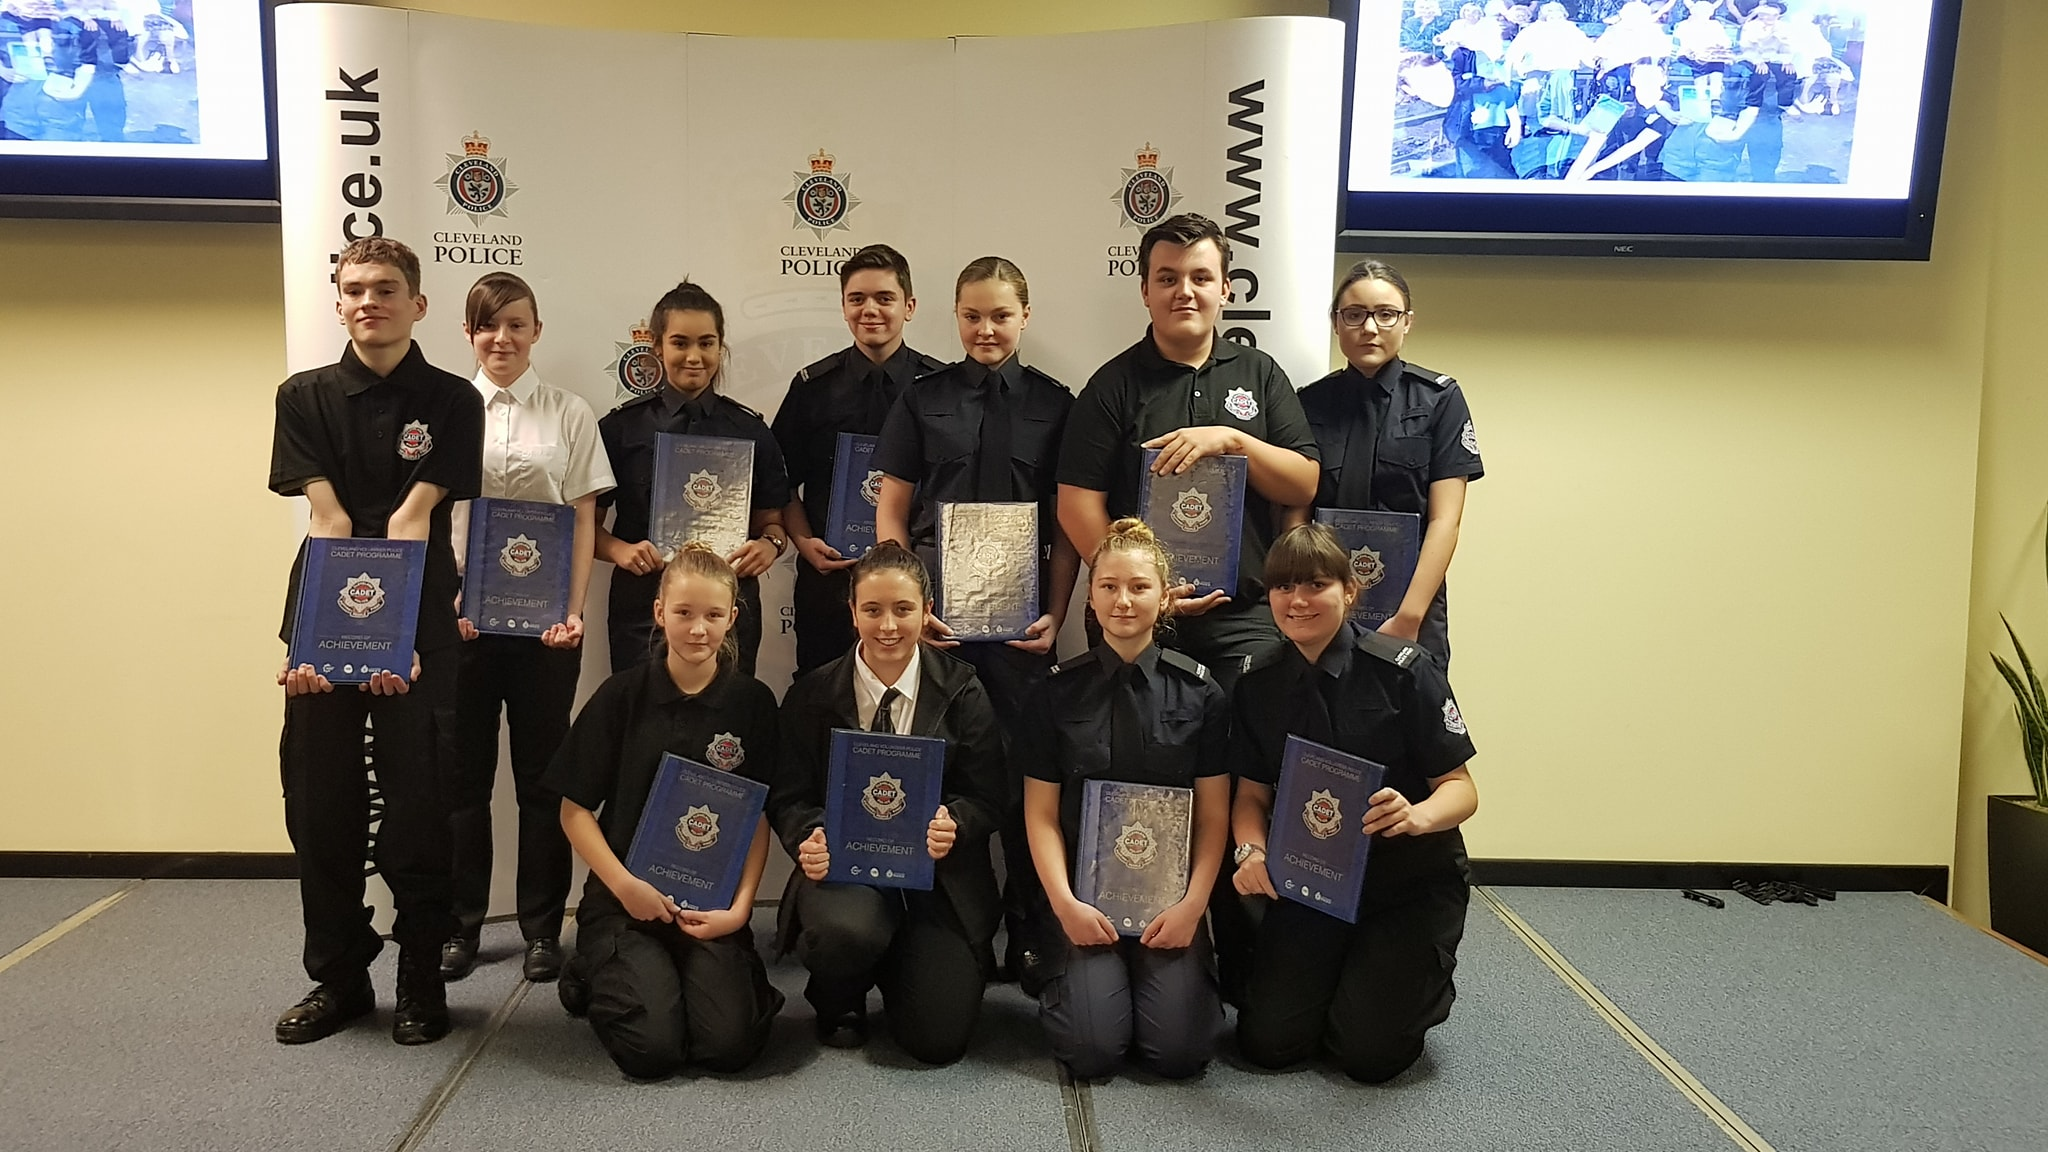 Cleveland VPC Awards Ceremony- Recognising great work